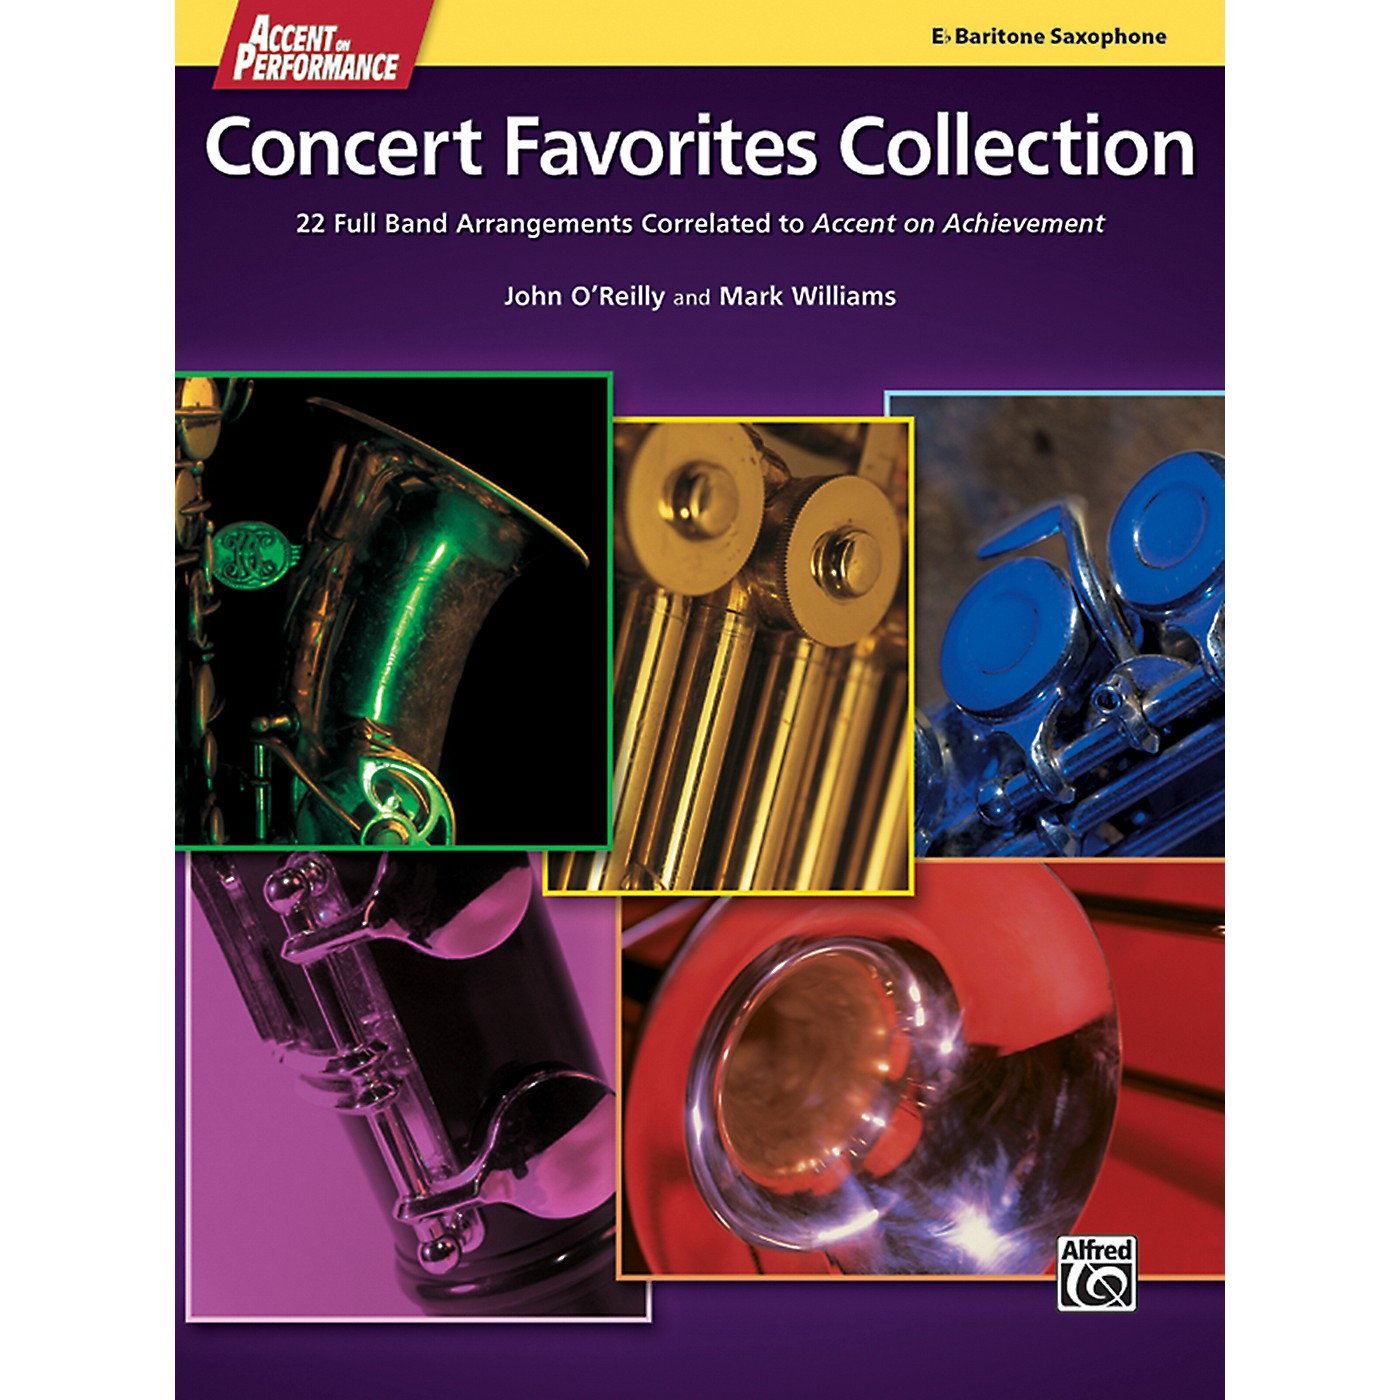 Alfred Accent on Performance Concert Favorites Collection Baritone Sax Book thumbnail